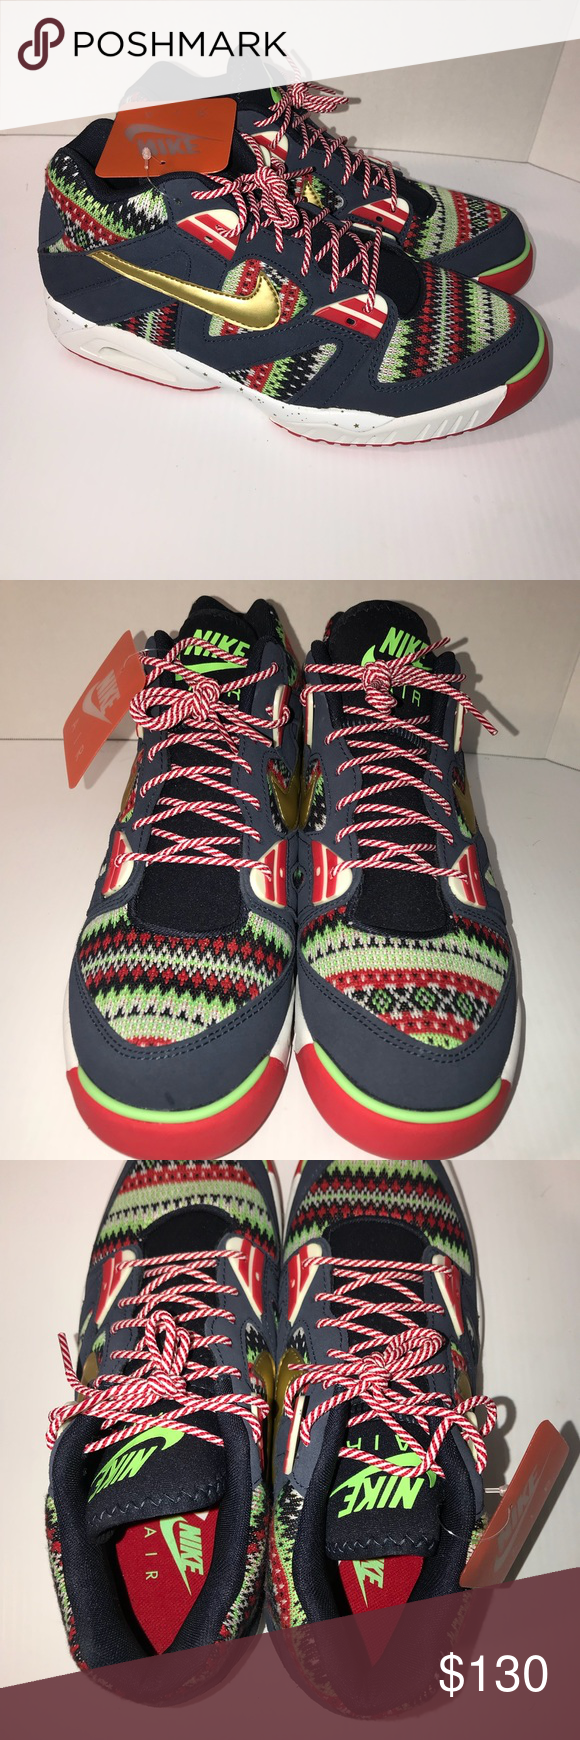 48fdf9892ace Nike Air Tech Challenge III QS Ugly Xmas Sz 10.5 NEW men s Sz 10.5 Nike Air  Tech Challenge III QS Ugly Xmas Sweater Gold Red Nike ID  827822-400 New  without ...